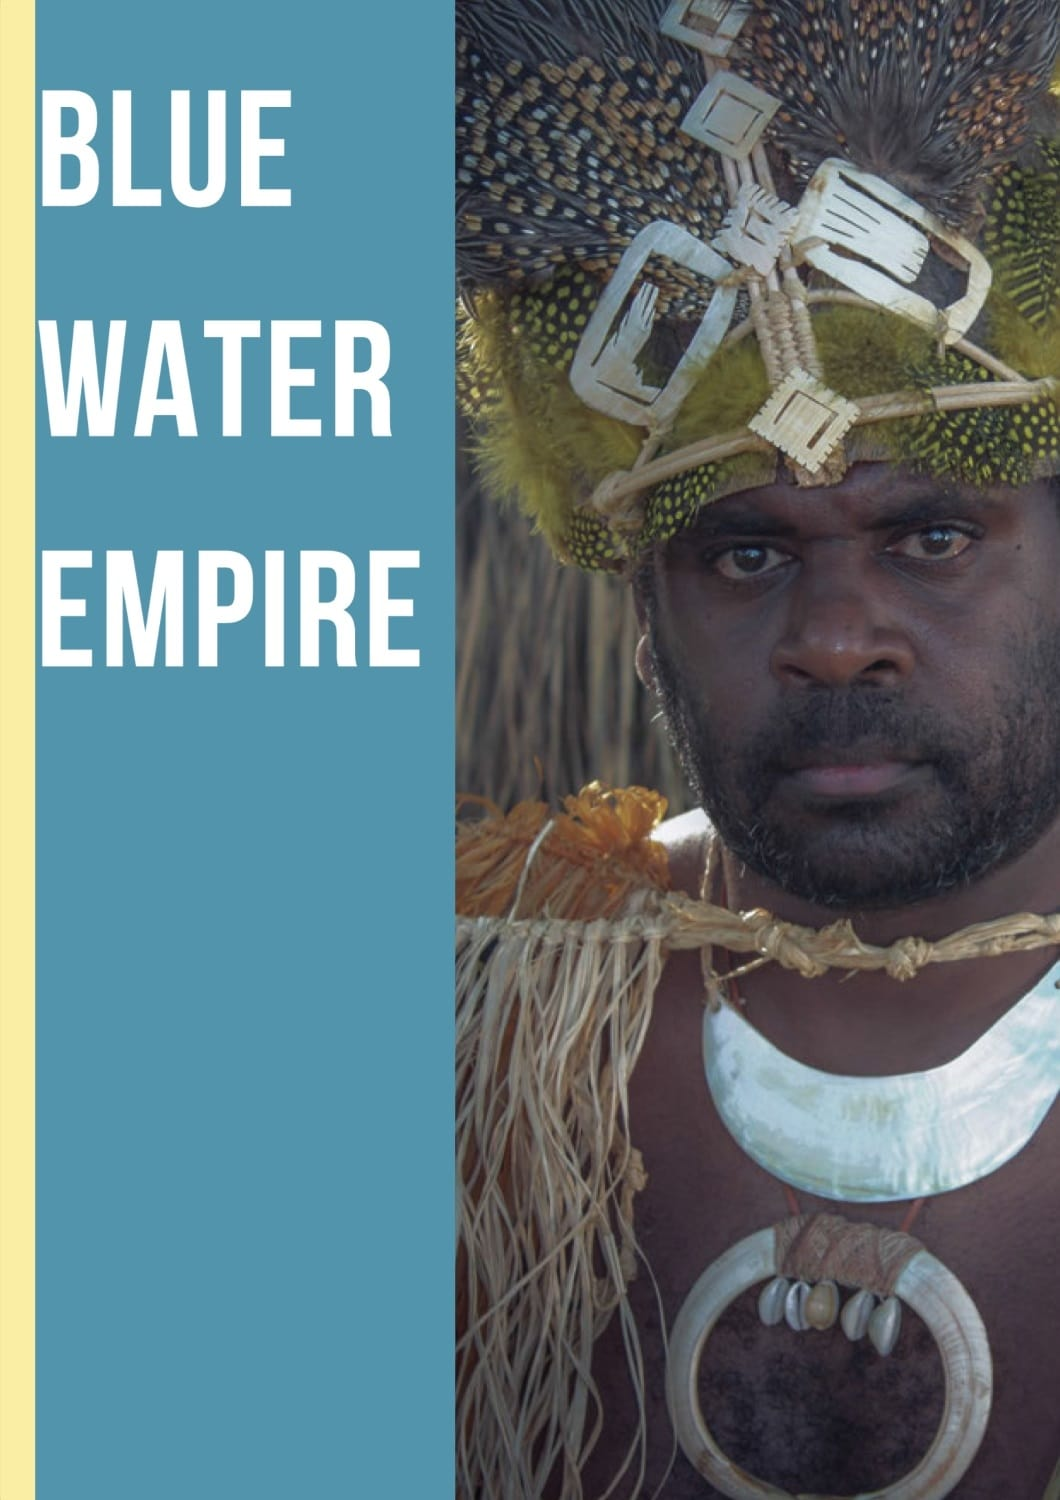 Blue Water Empire (2019)